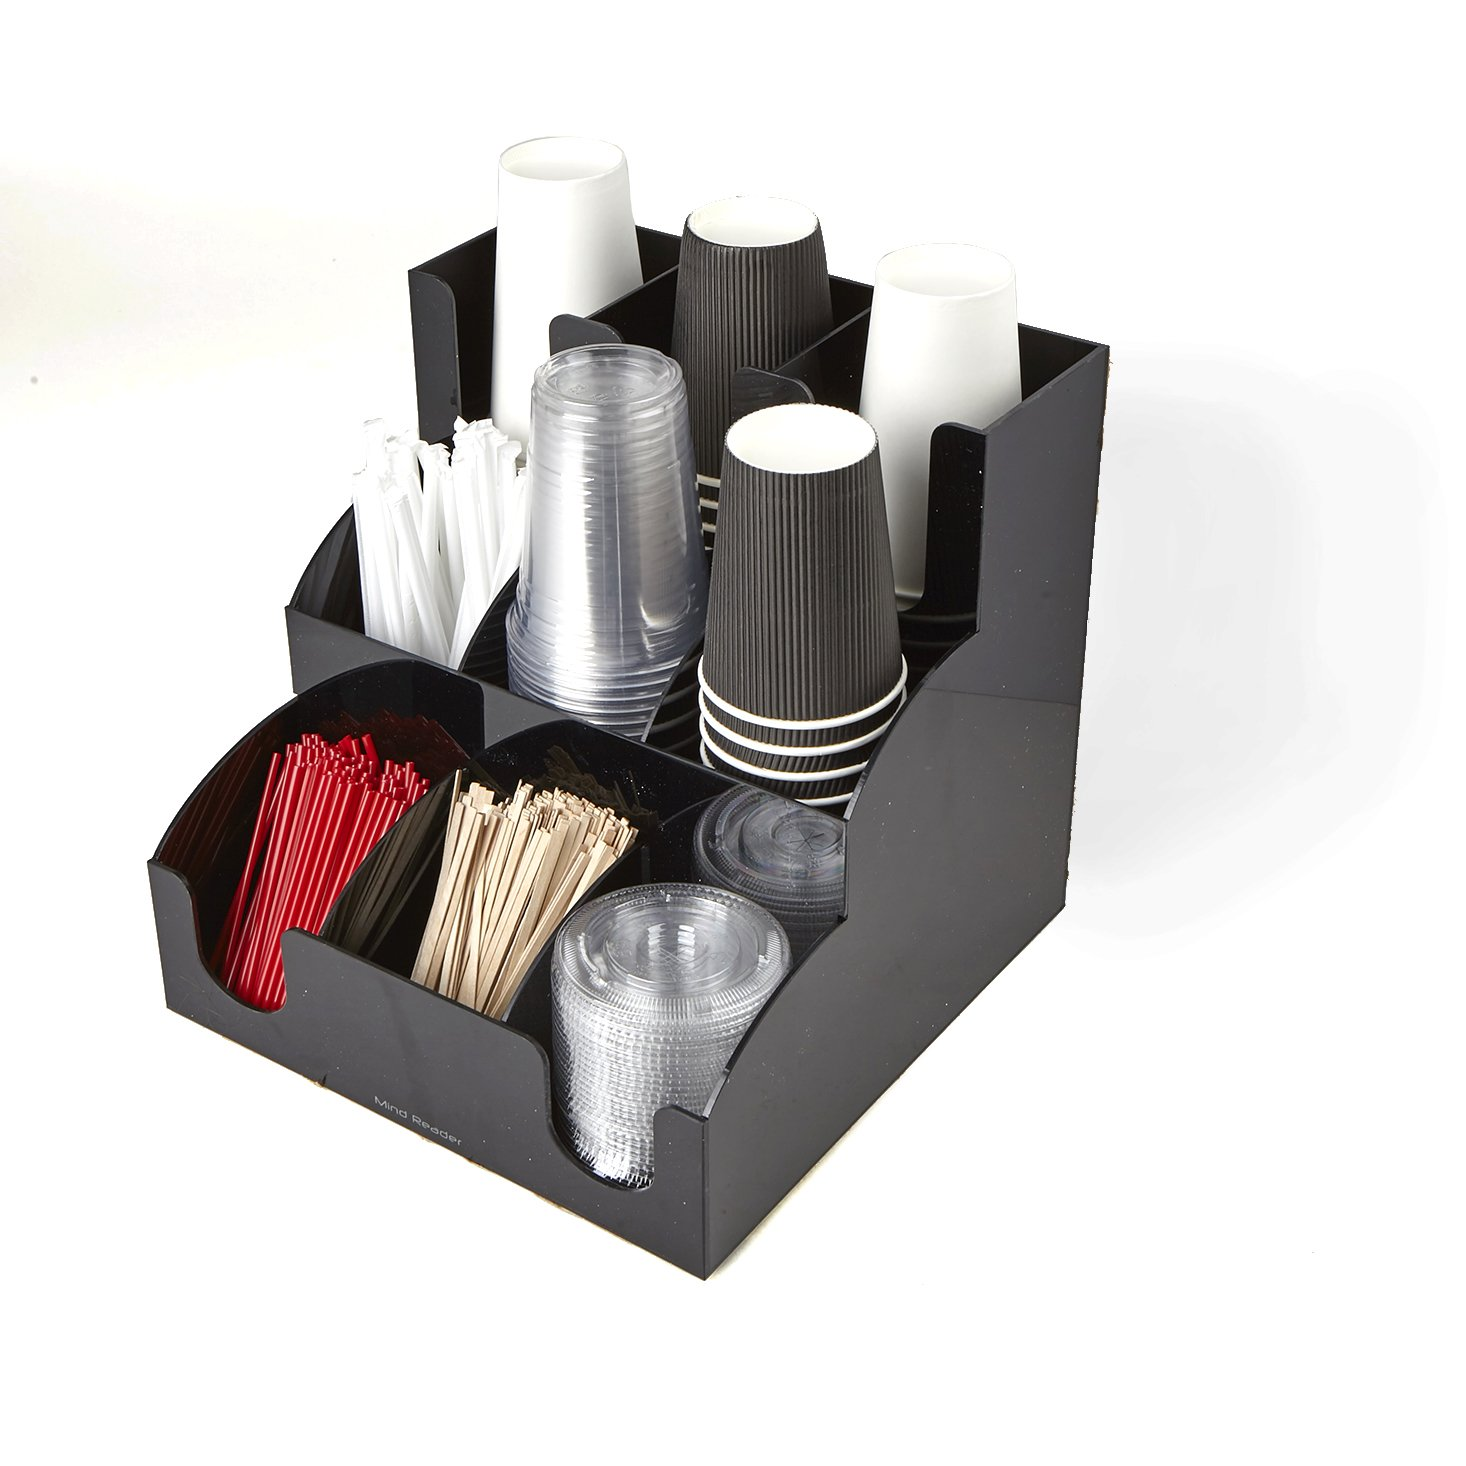 Mind Reader 9 Compartment Coffee Condiment and Accessories Organizer, Black by Mind Reader (Image #2)